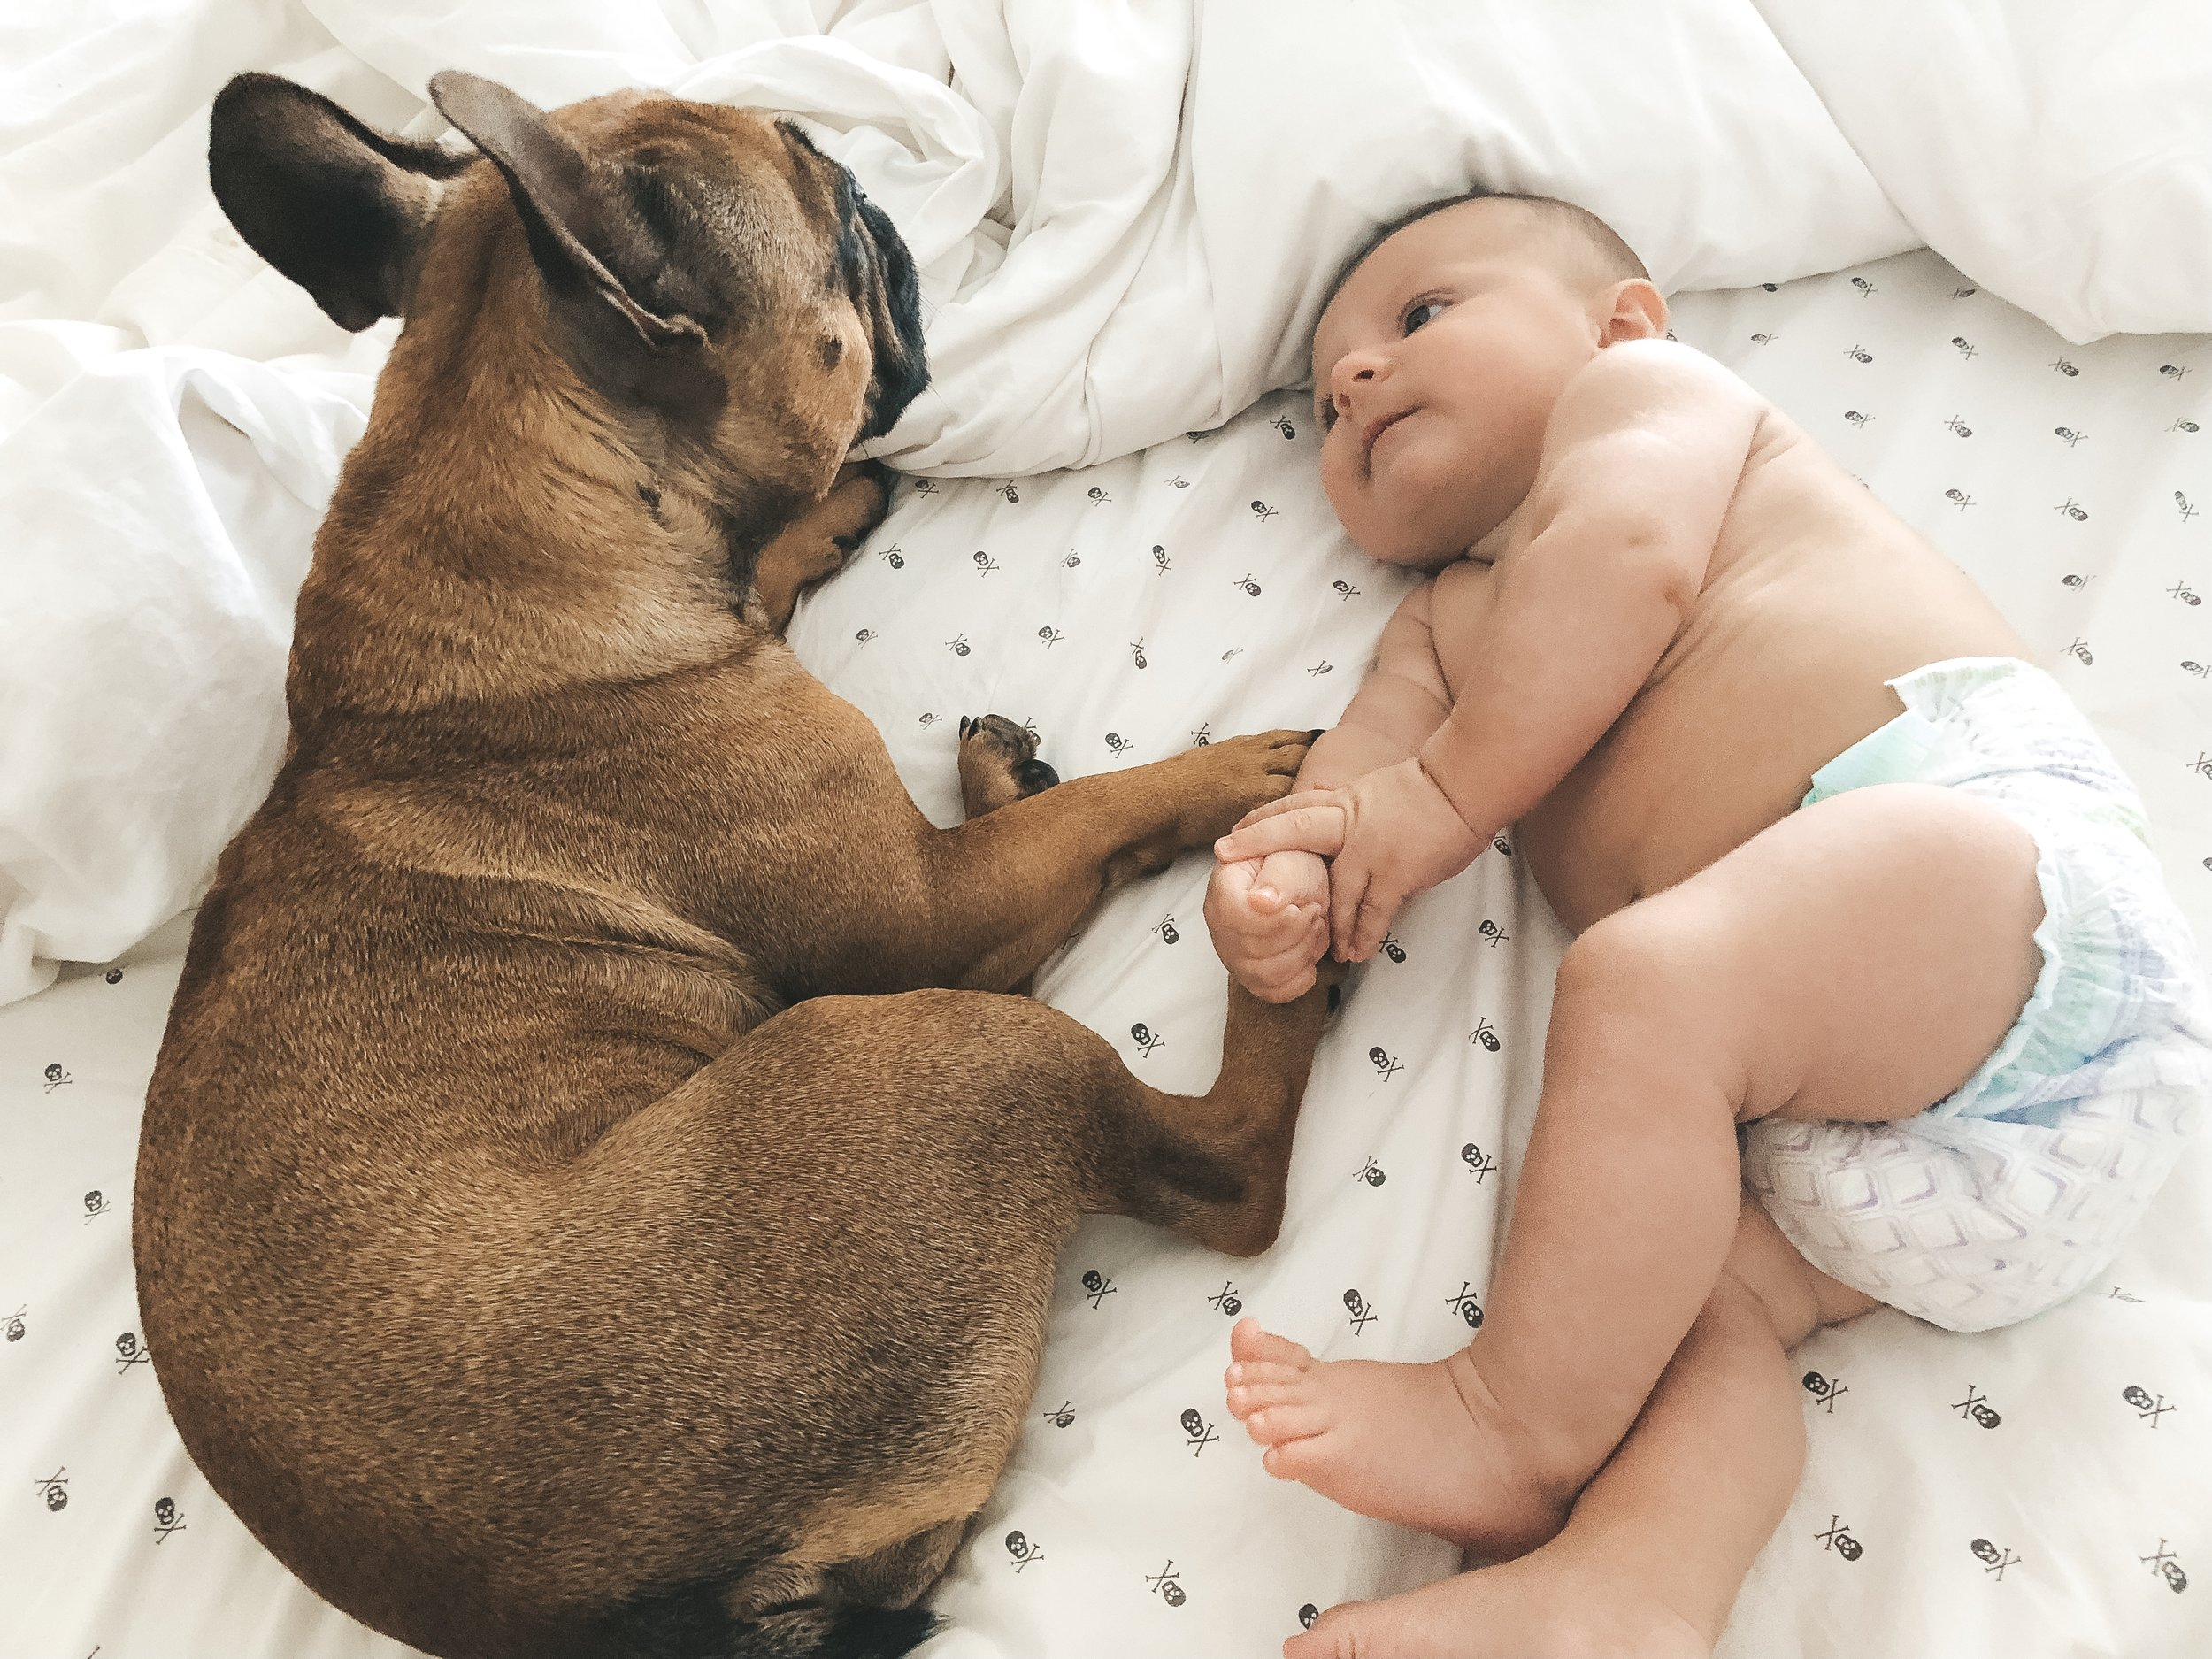 Jett and Dwayne.  Frenchie and baby besties.